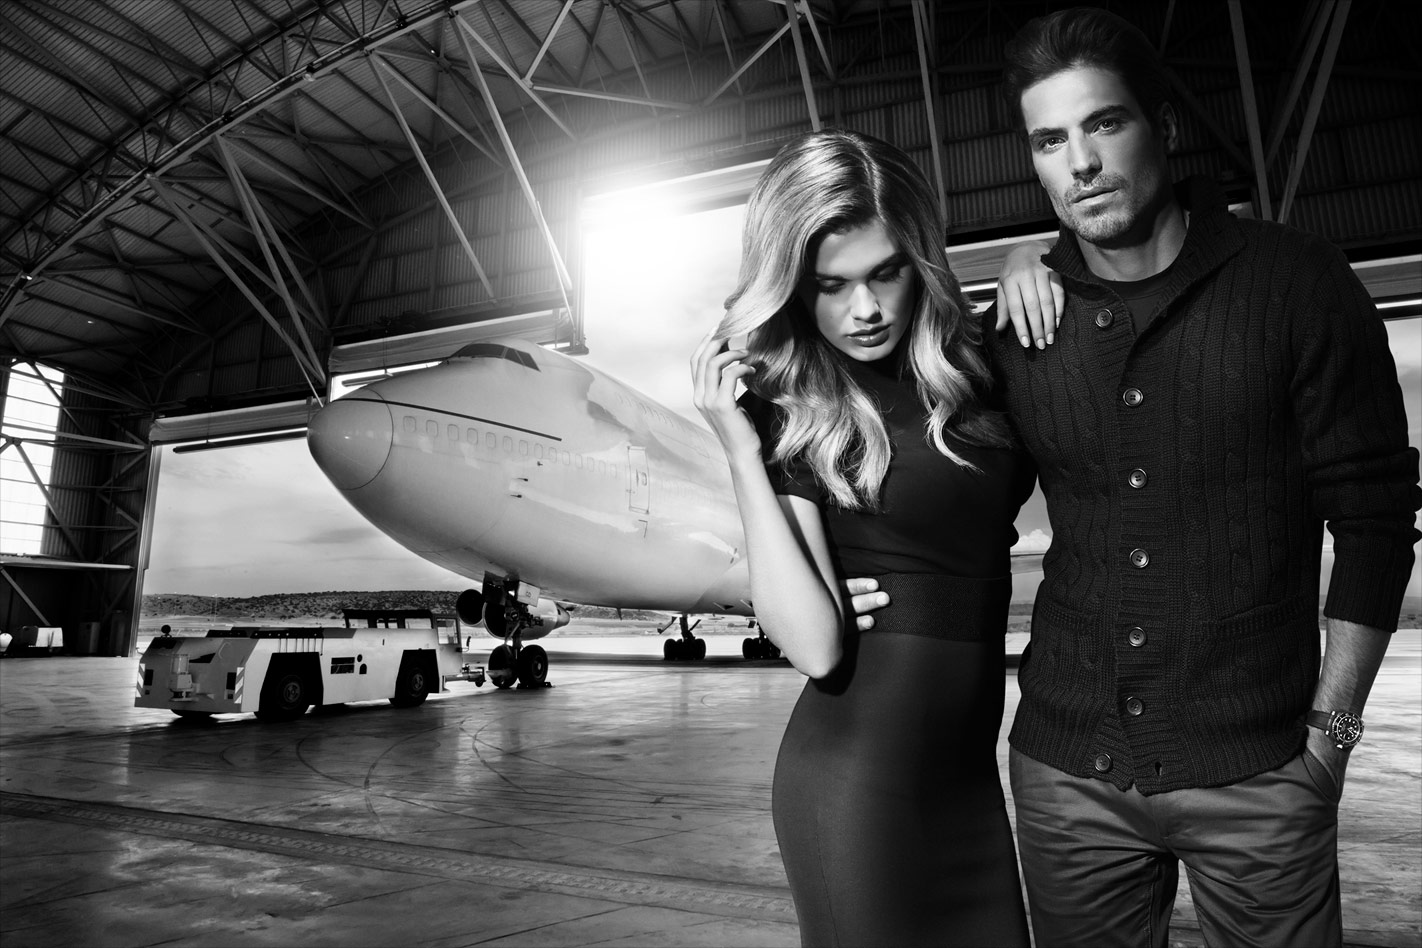 Mark DeLong - Commercial Photography - Gray scale photo of couple near a jet.